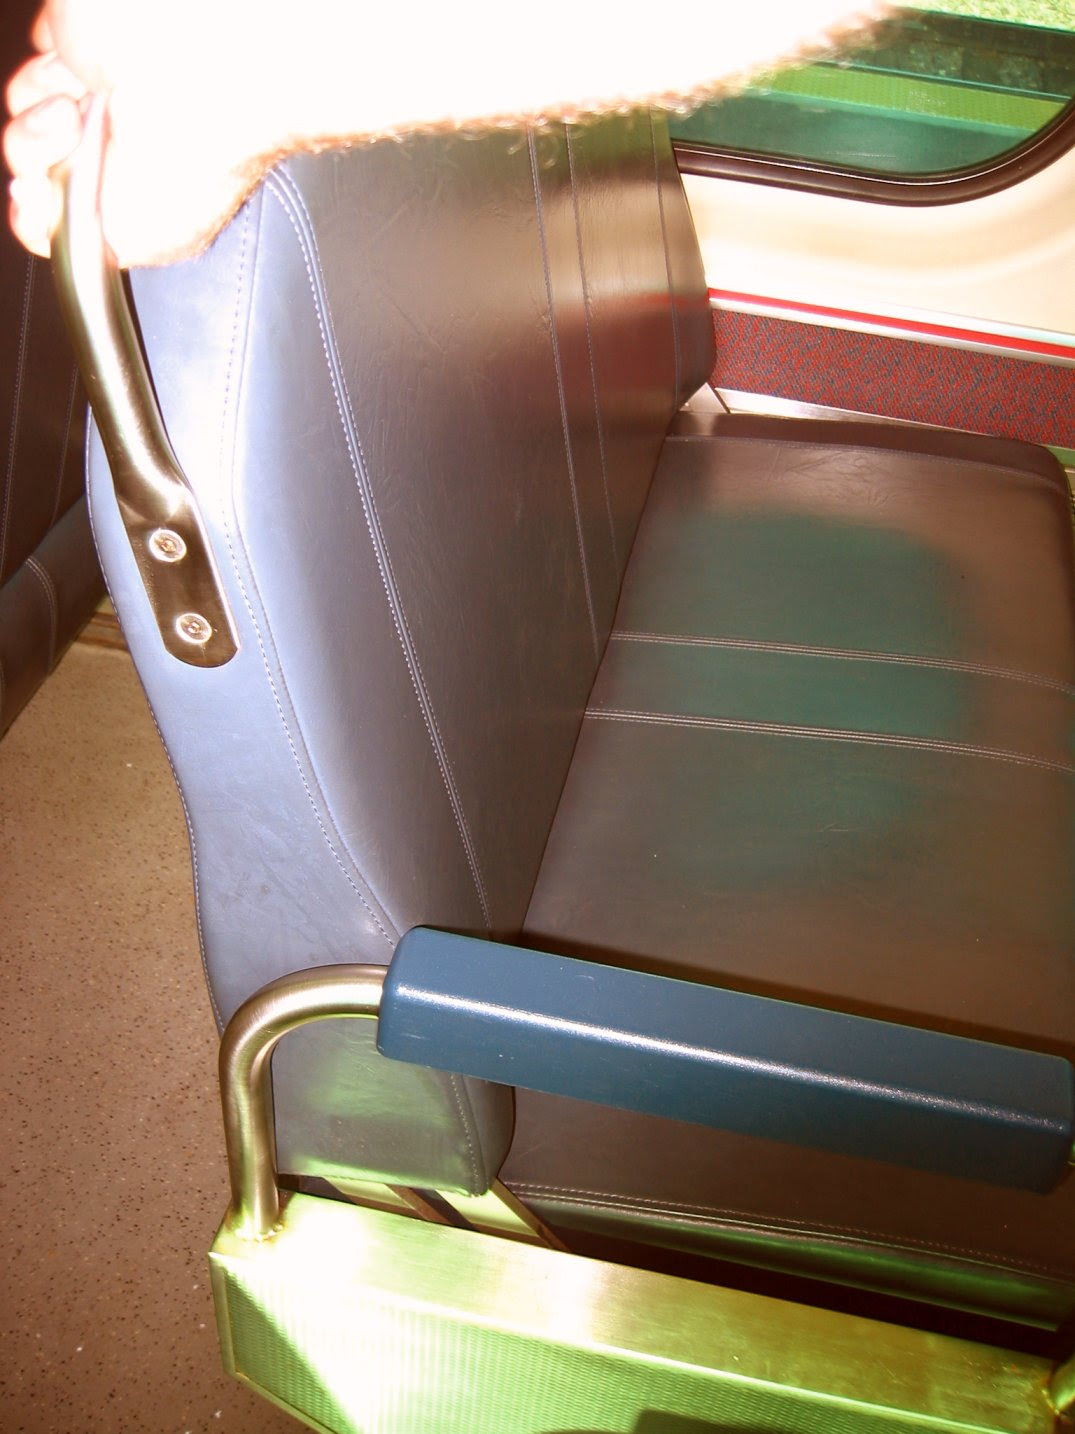 Revirsible chair on the Metra train from Kenosha to Chicago - soul-amp.com